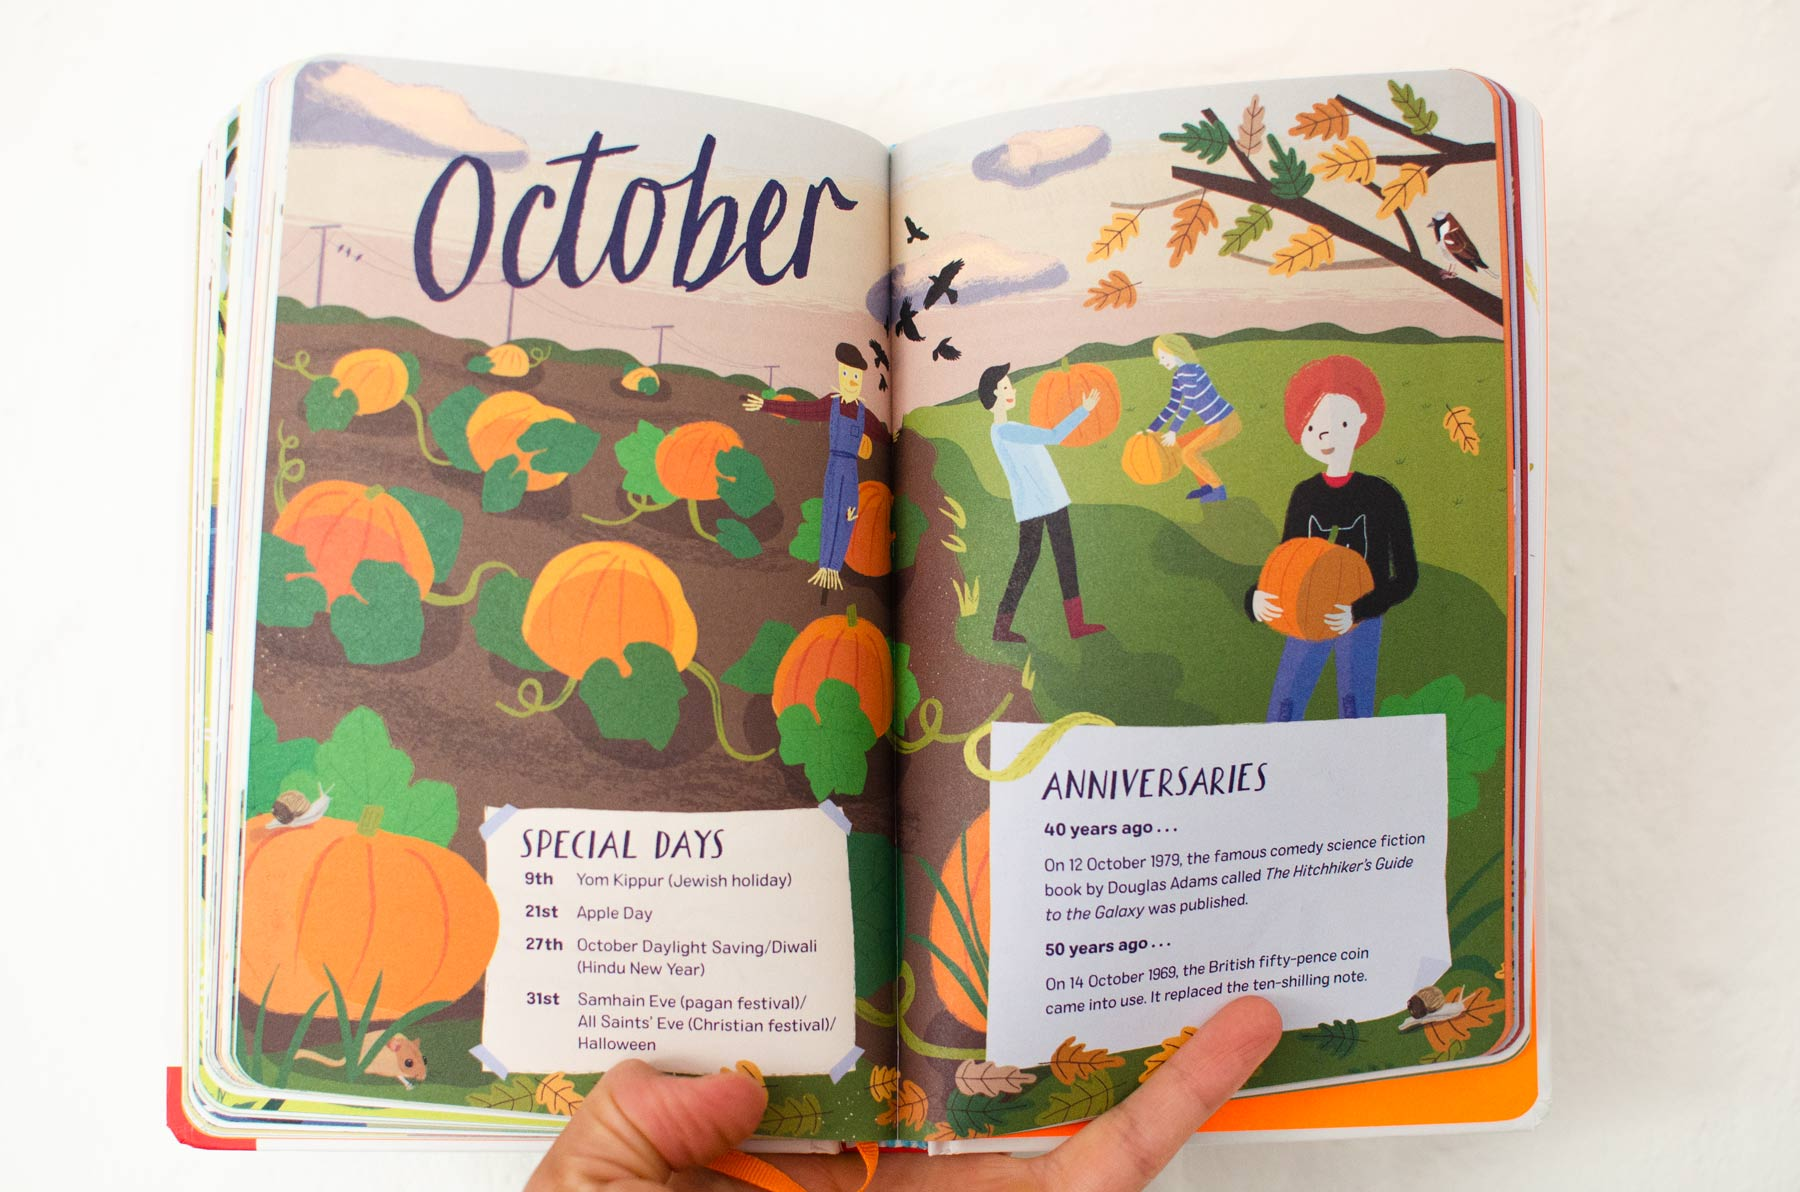 October Final Illustration for 2019: Nature Month by Month by Elly Jahnz